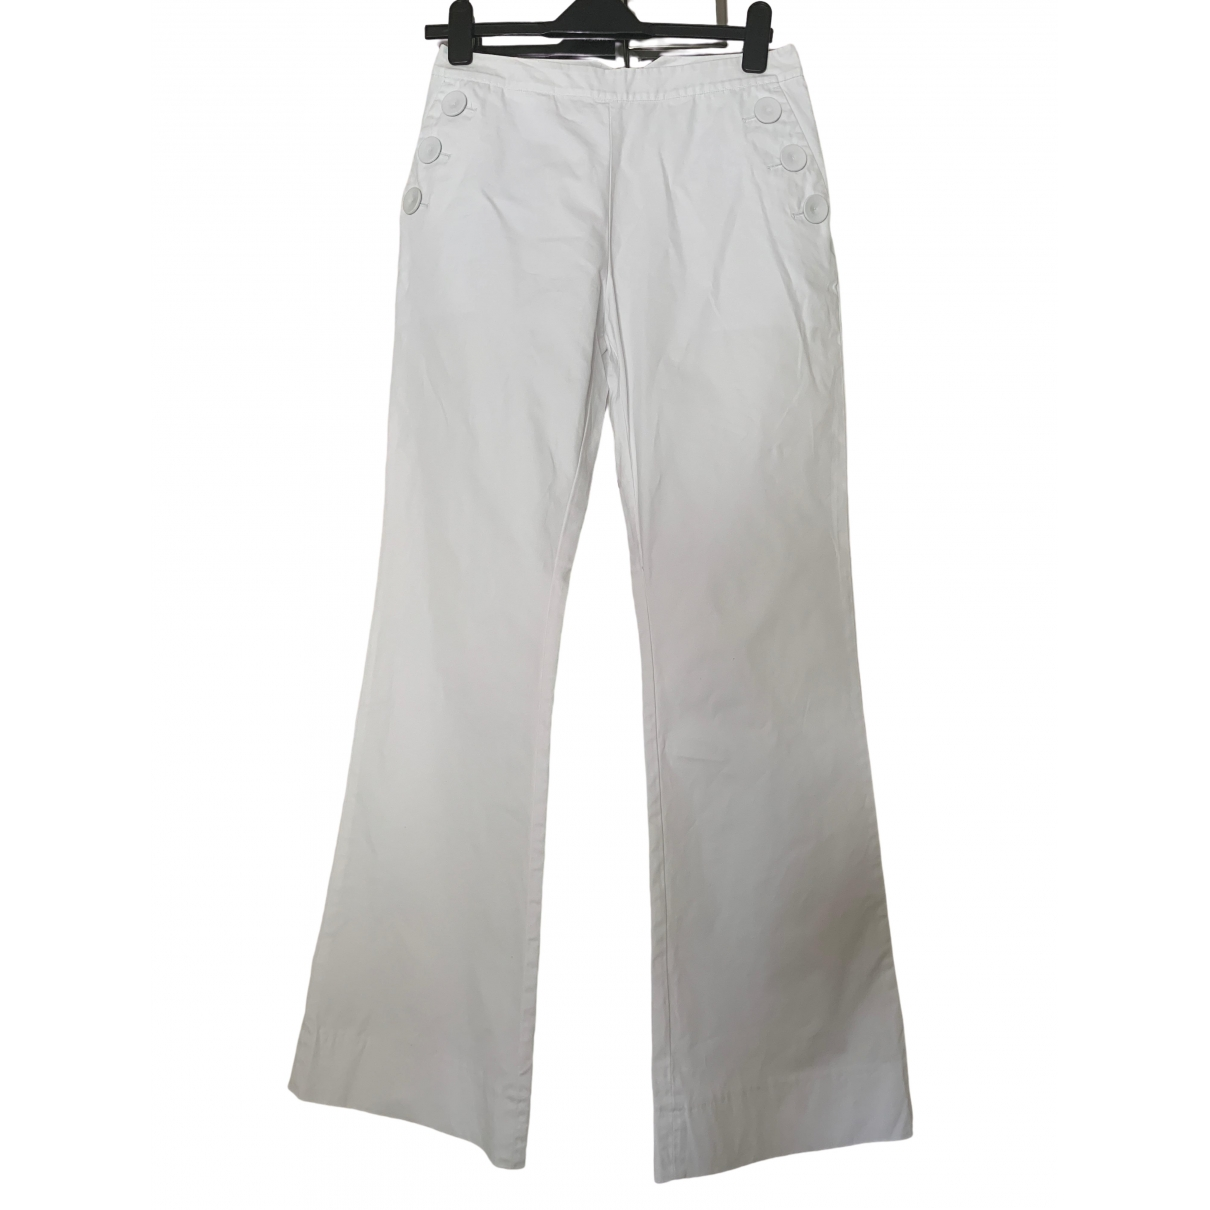 Designers Remix \N White Cotton Trousers for Women 38 FR